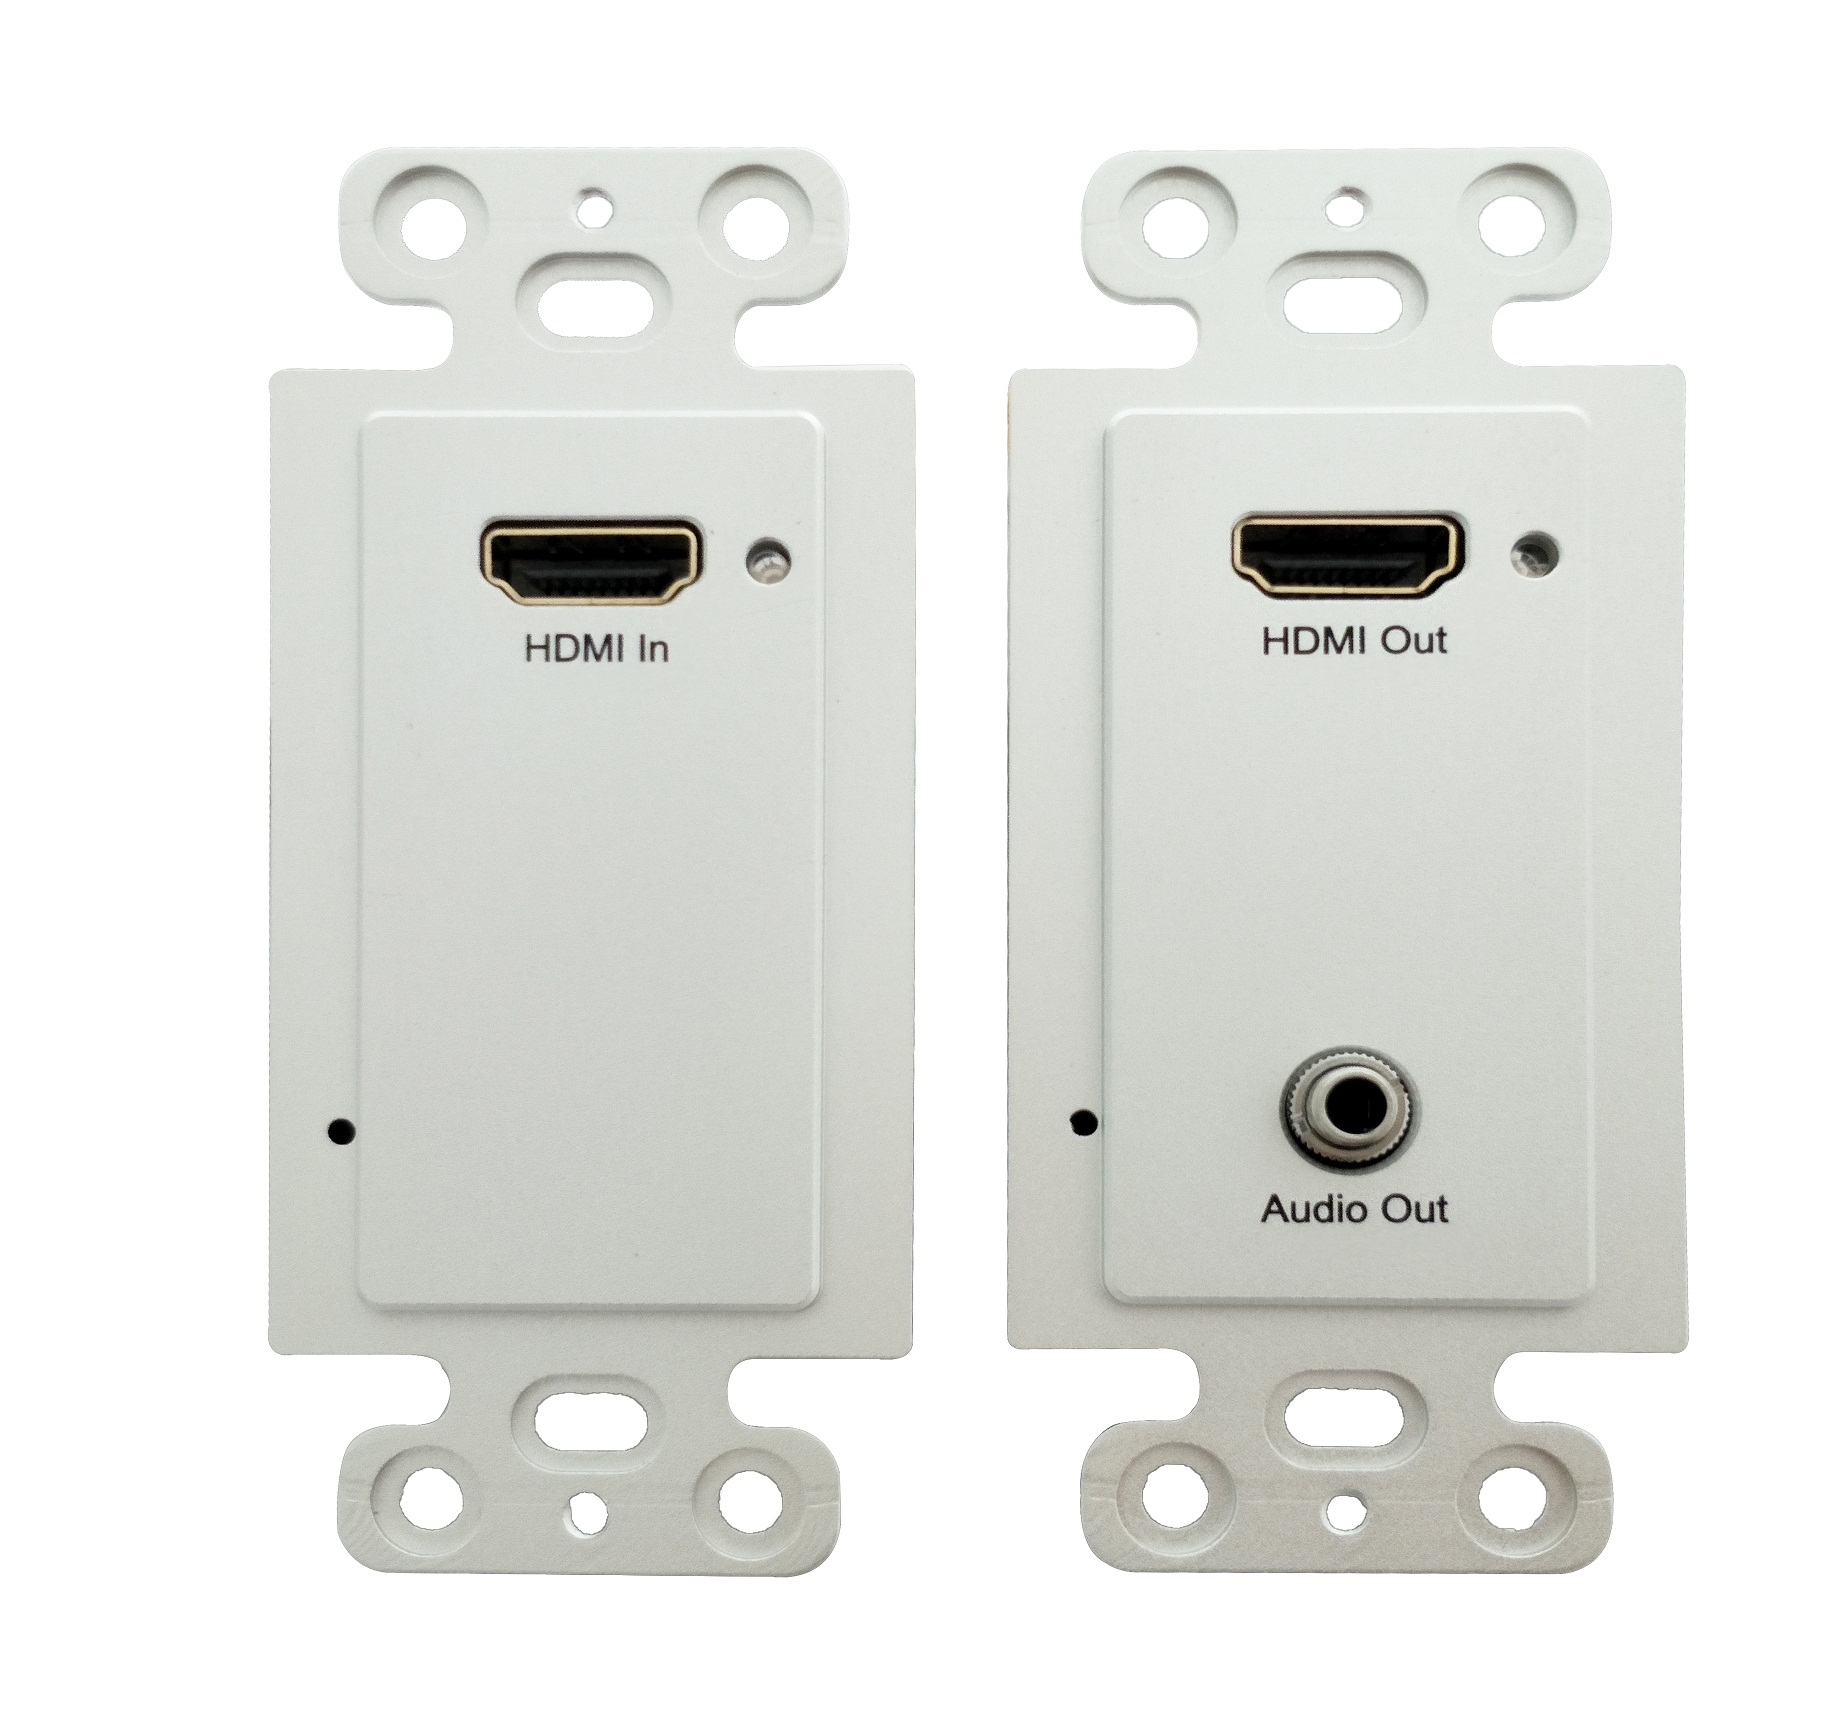 H.264 120m HDMI Wallplate Extender over IP with POE